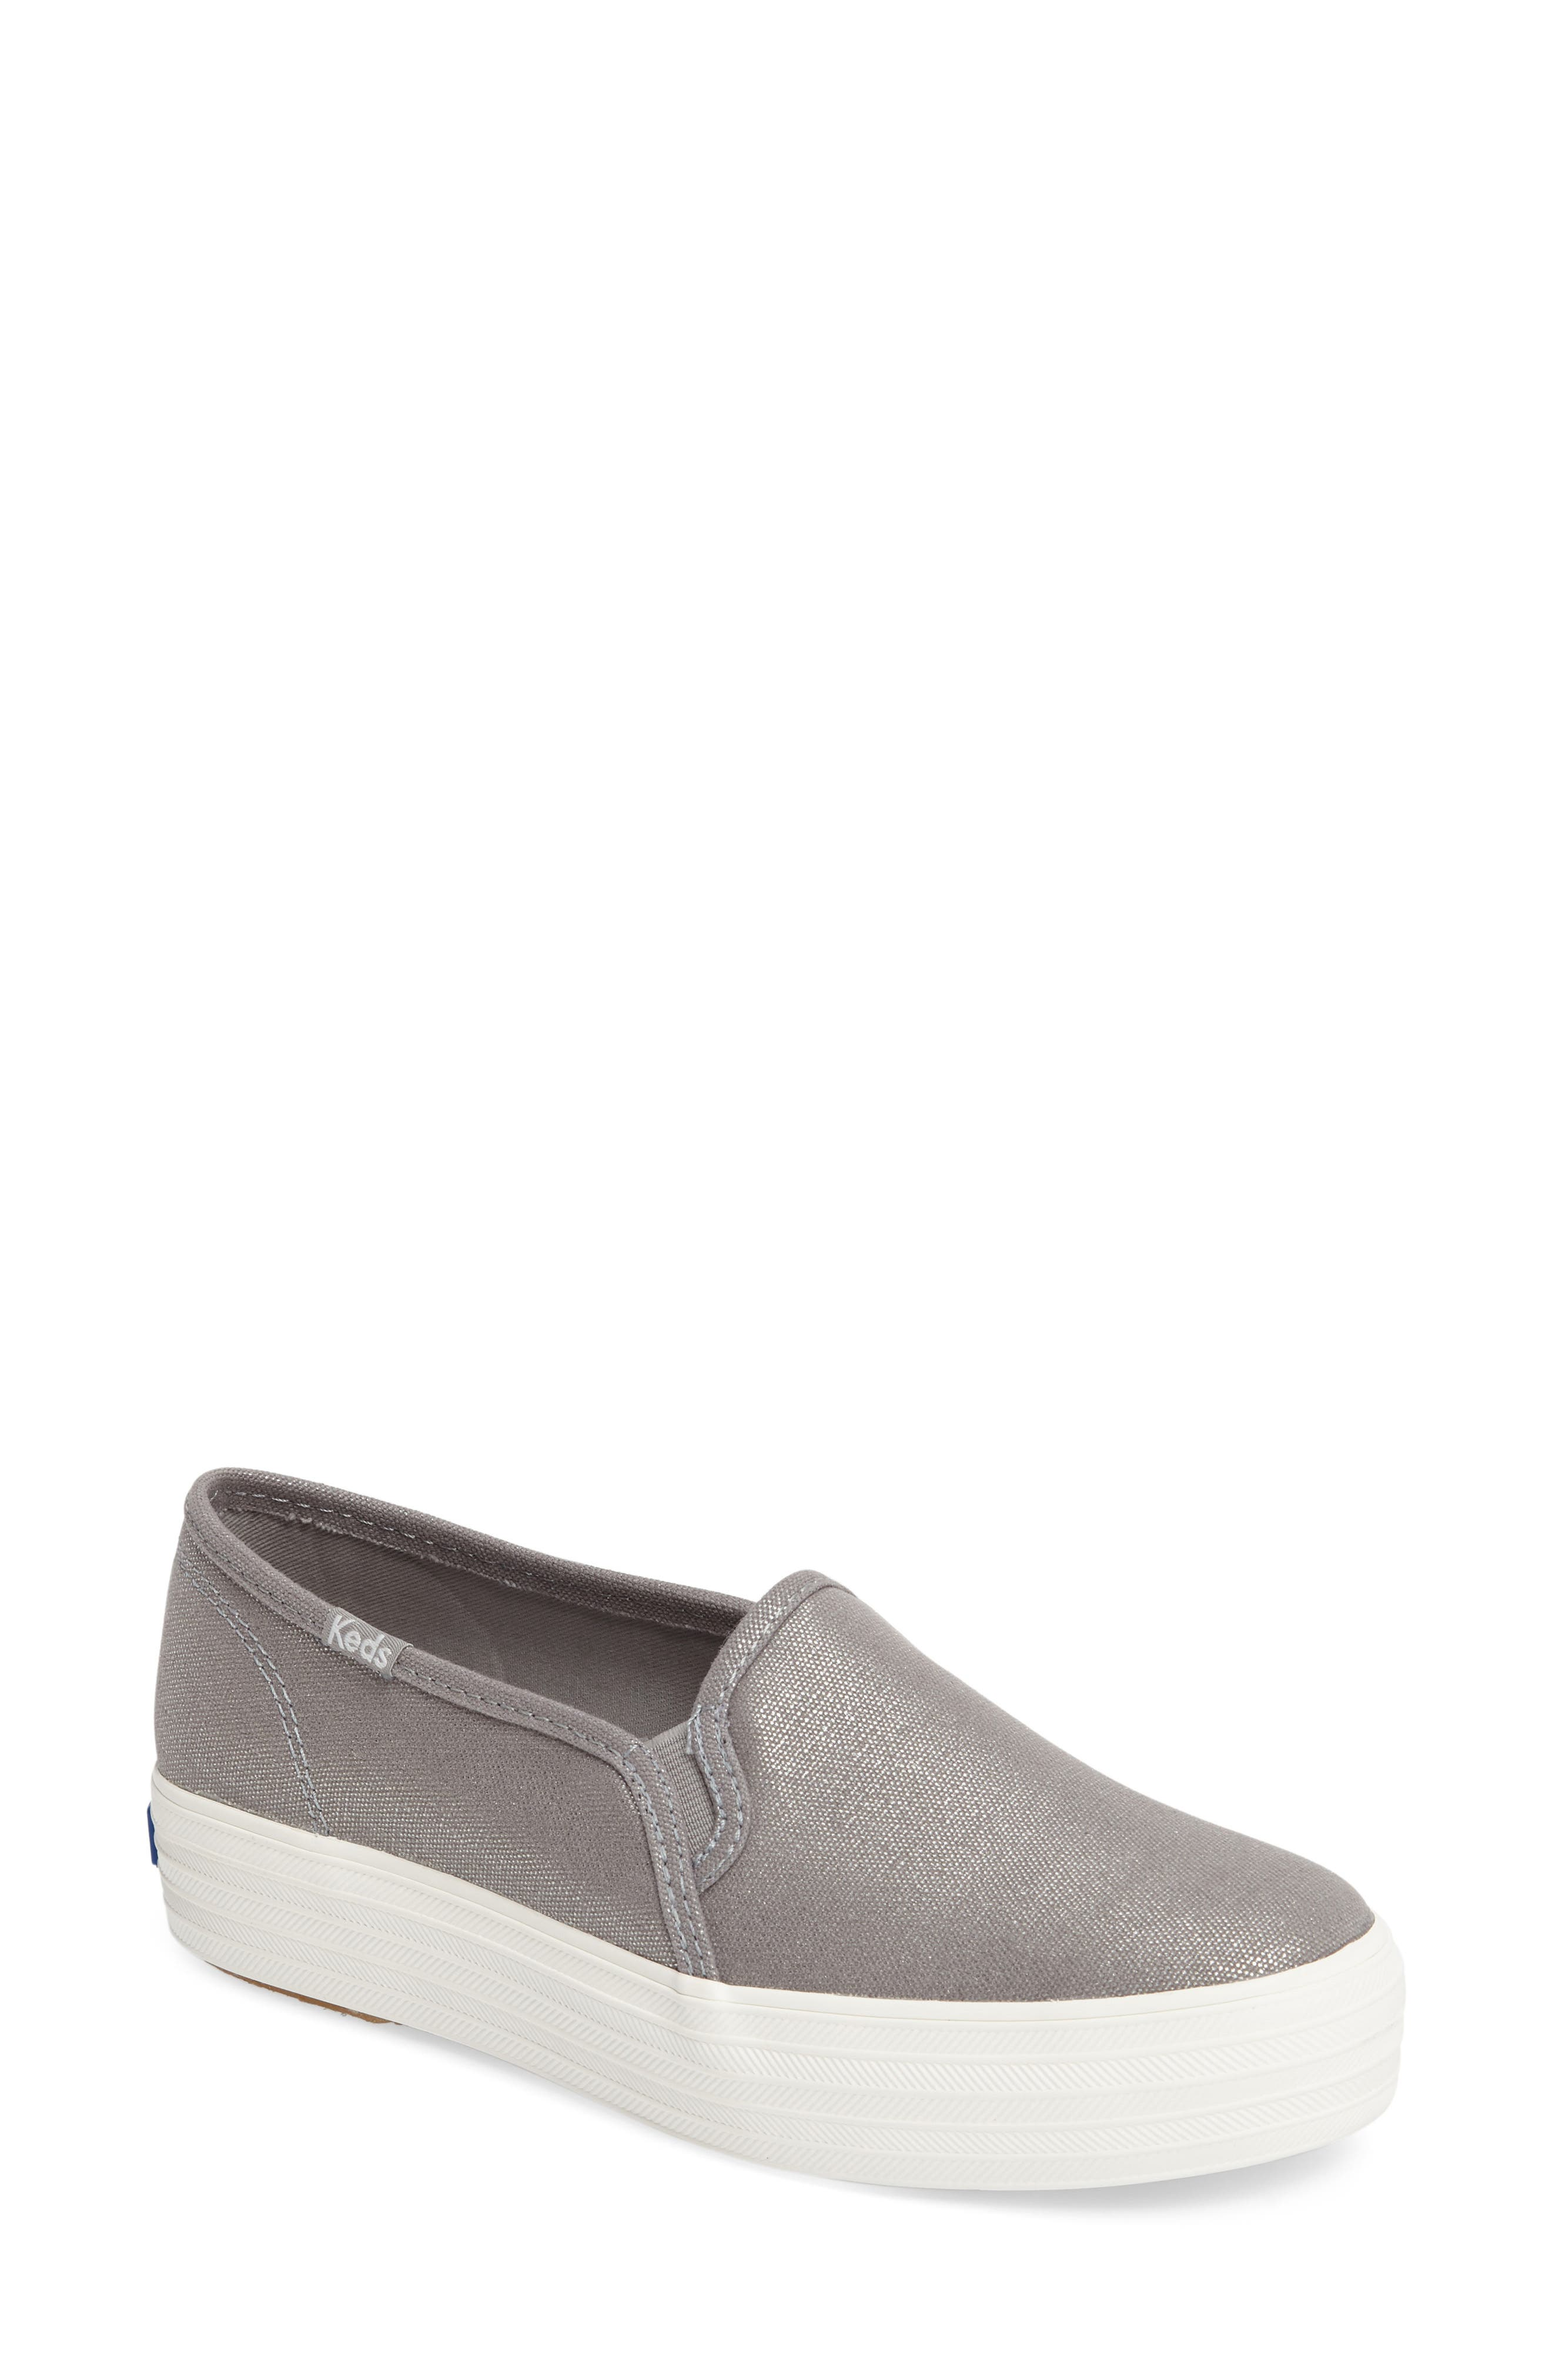 Triple Decker Slip-On Platform Sneaker,                         Main,                         color, Silver